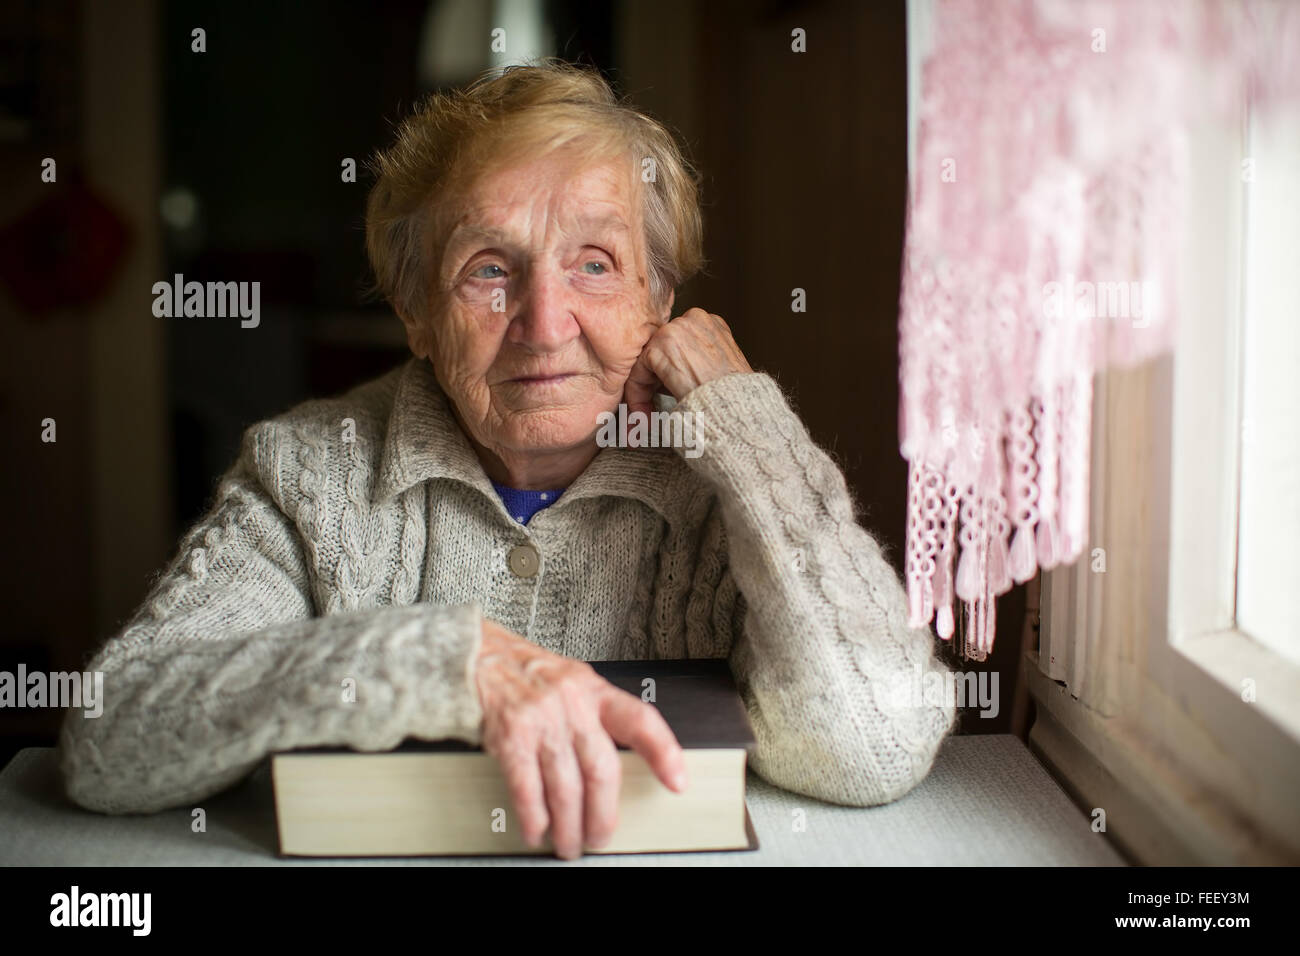 An elderly woman sits with a big book near the window. - Stock Image